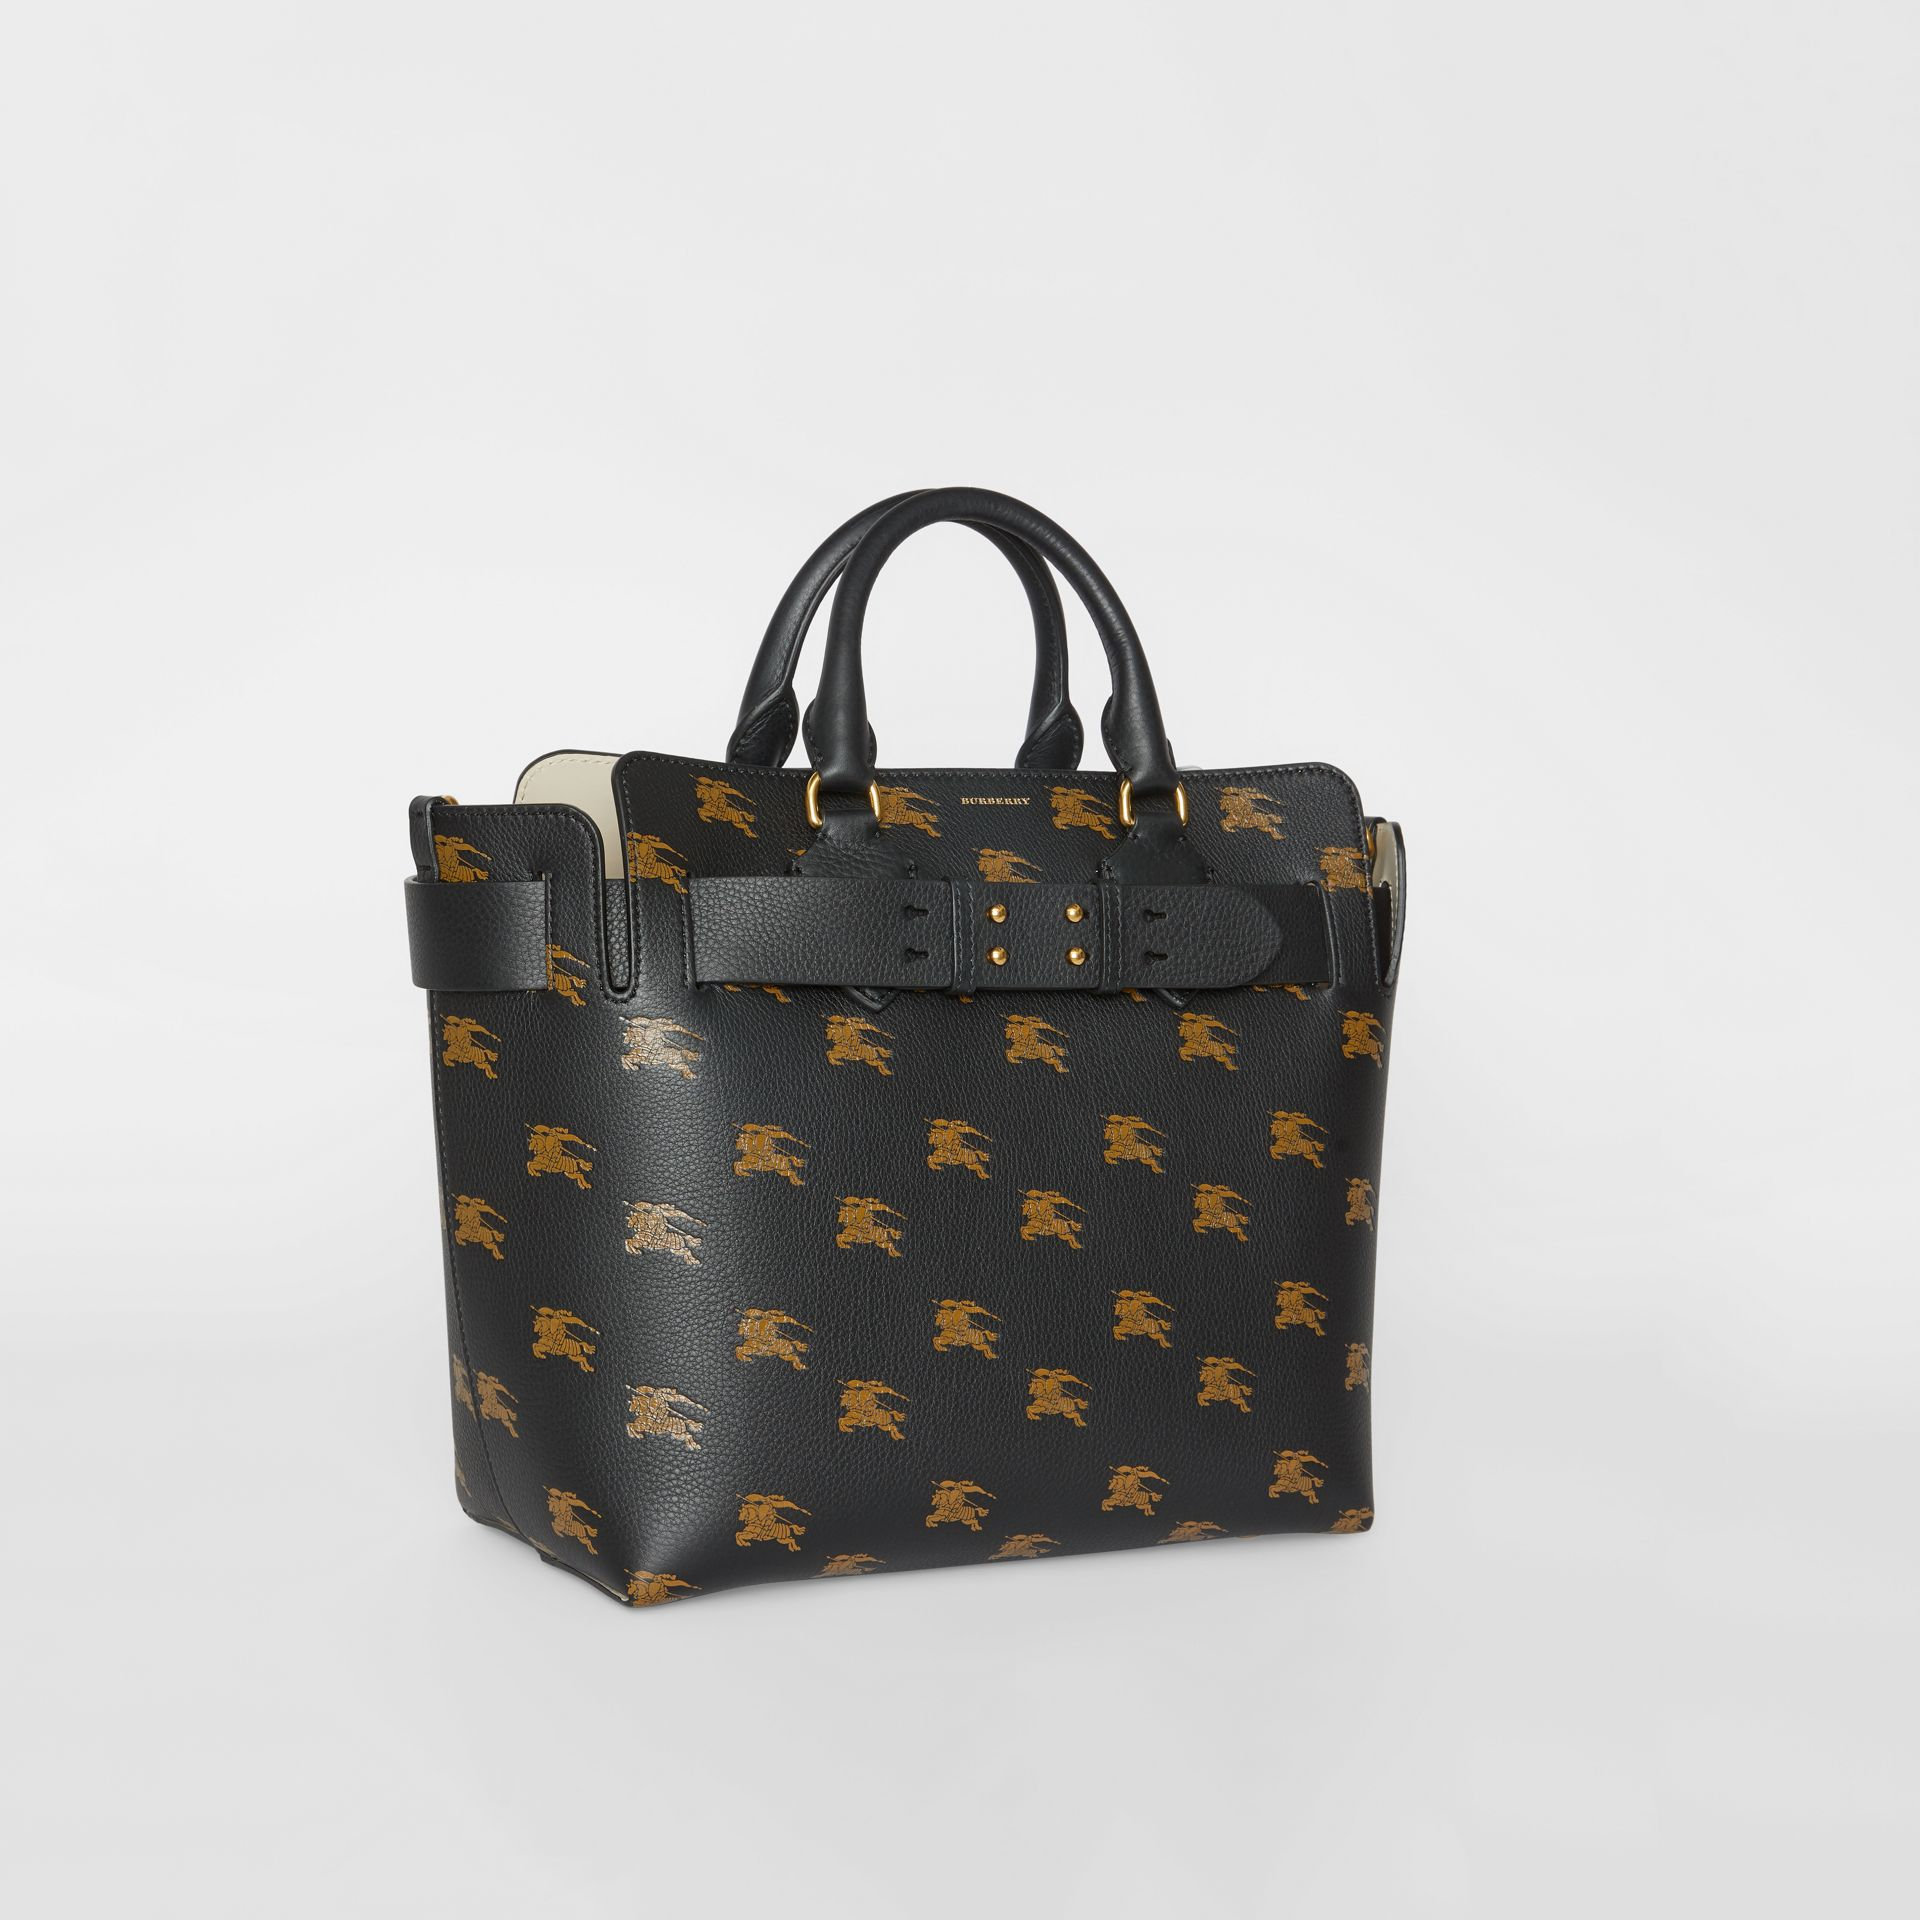 Borsa The Belt media in pelle con cavaliere equestre (Nero) - Donna | Burberry - immagine della galleria 6